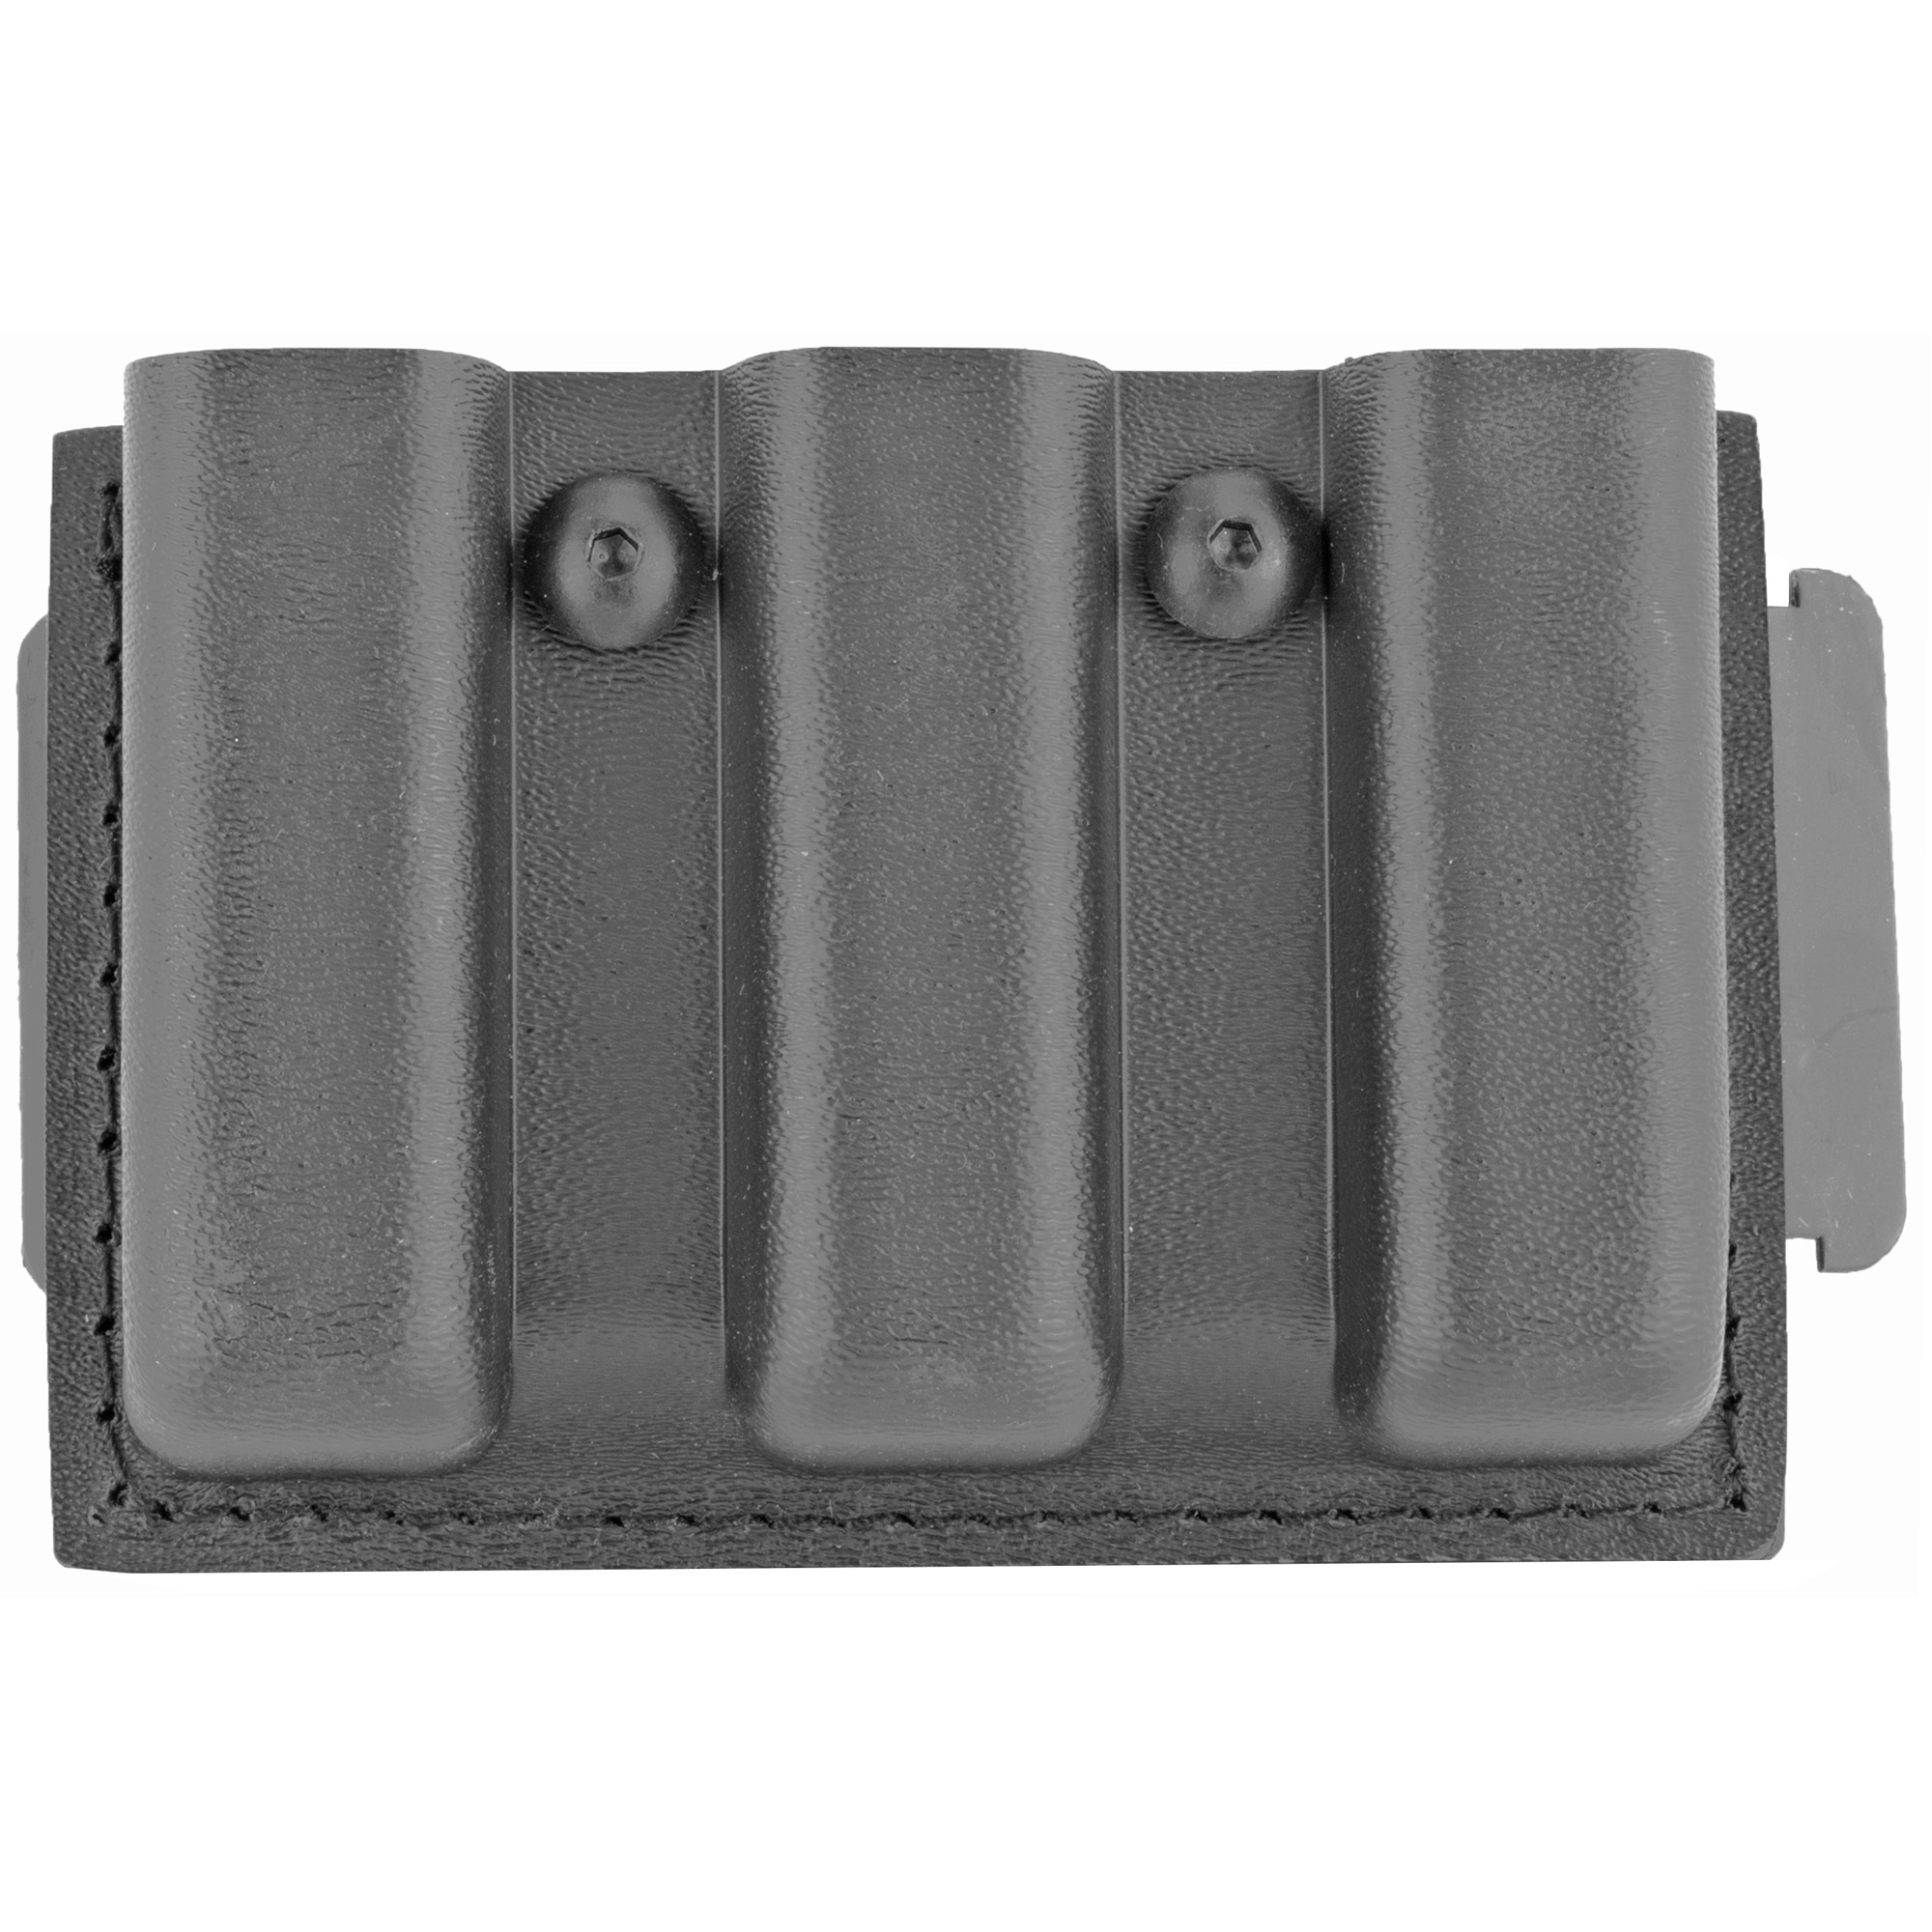 "Model 775 Slimline Open Top Triple Magazine Pouch is designed to carry three magazines on a 2.25"" (58mm) duty belt. The 775 features both vertical and horizontal belt slots"" allowing it to ride in either a vertical or low-profile horizontal position*. A magazine tension screw located between the two pouches allows for easy retention adjustment."